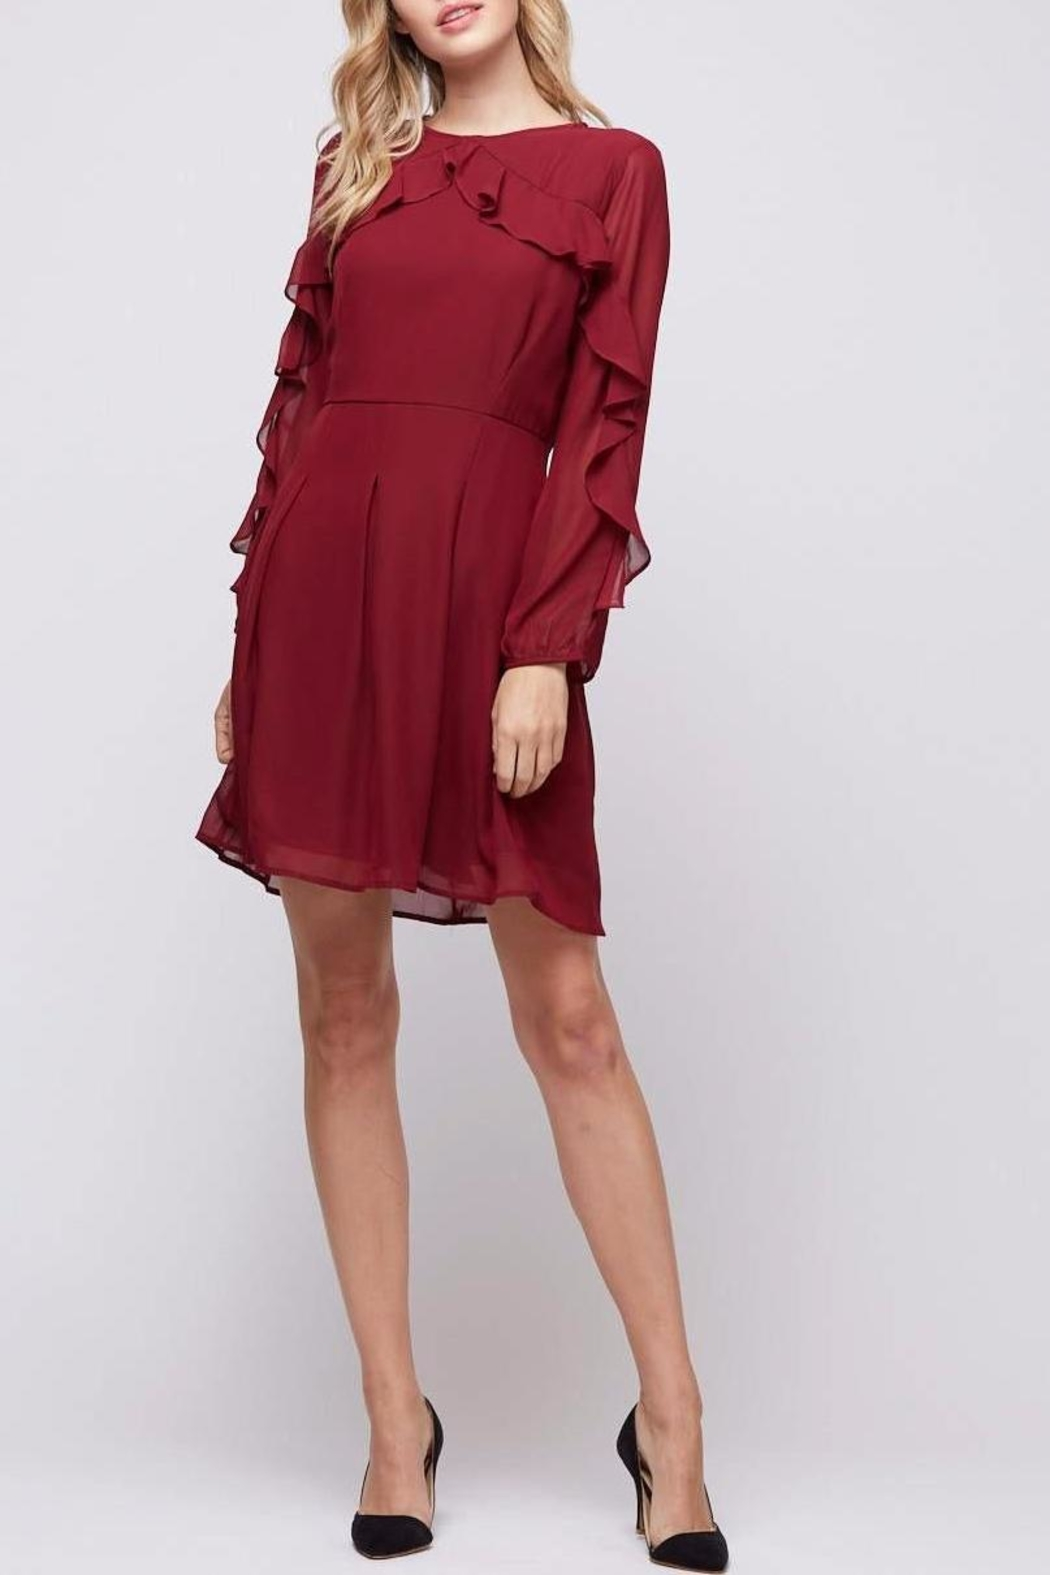 Peach Love California Ruffle Sleeve Dress - Main Image